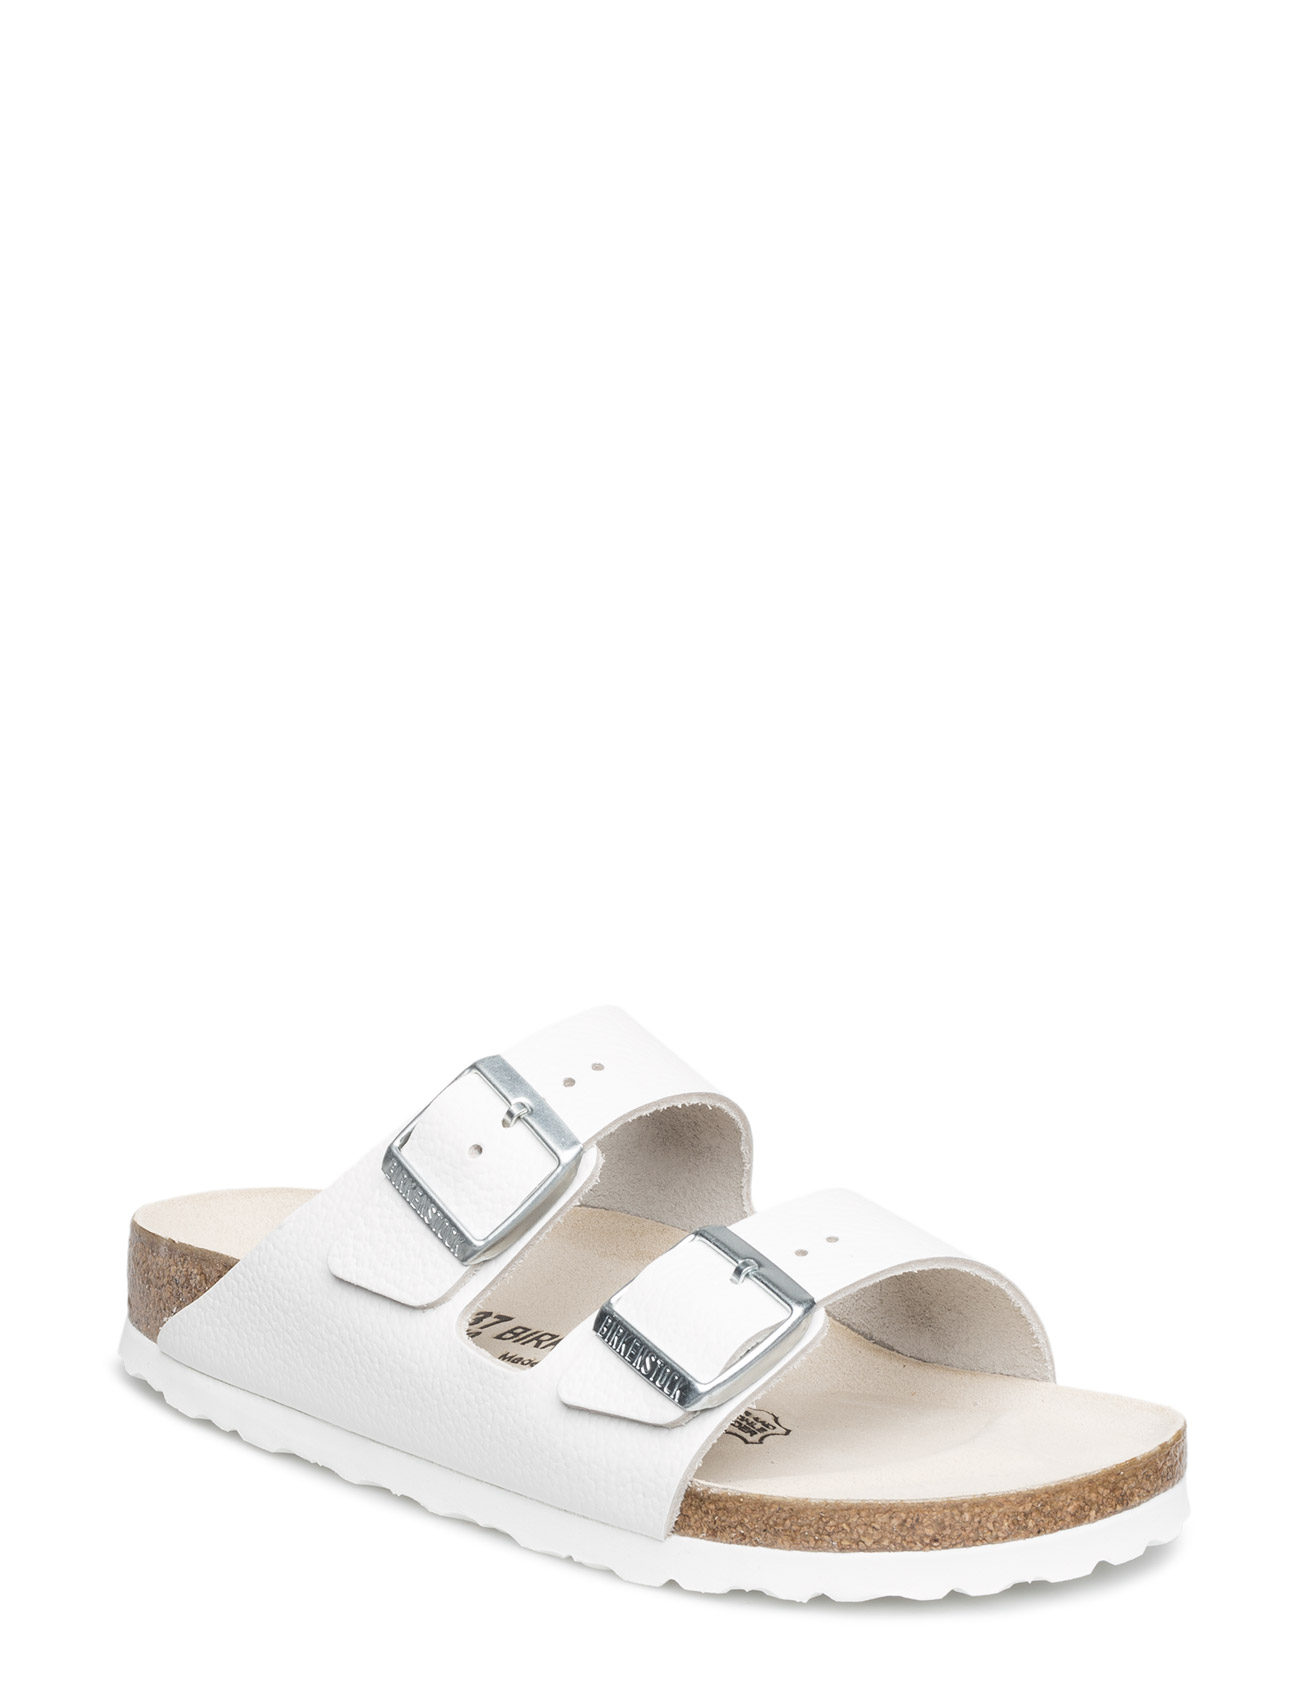 8acdb7290708 Arizona (White) (115 €) - Birkenstock -